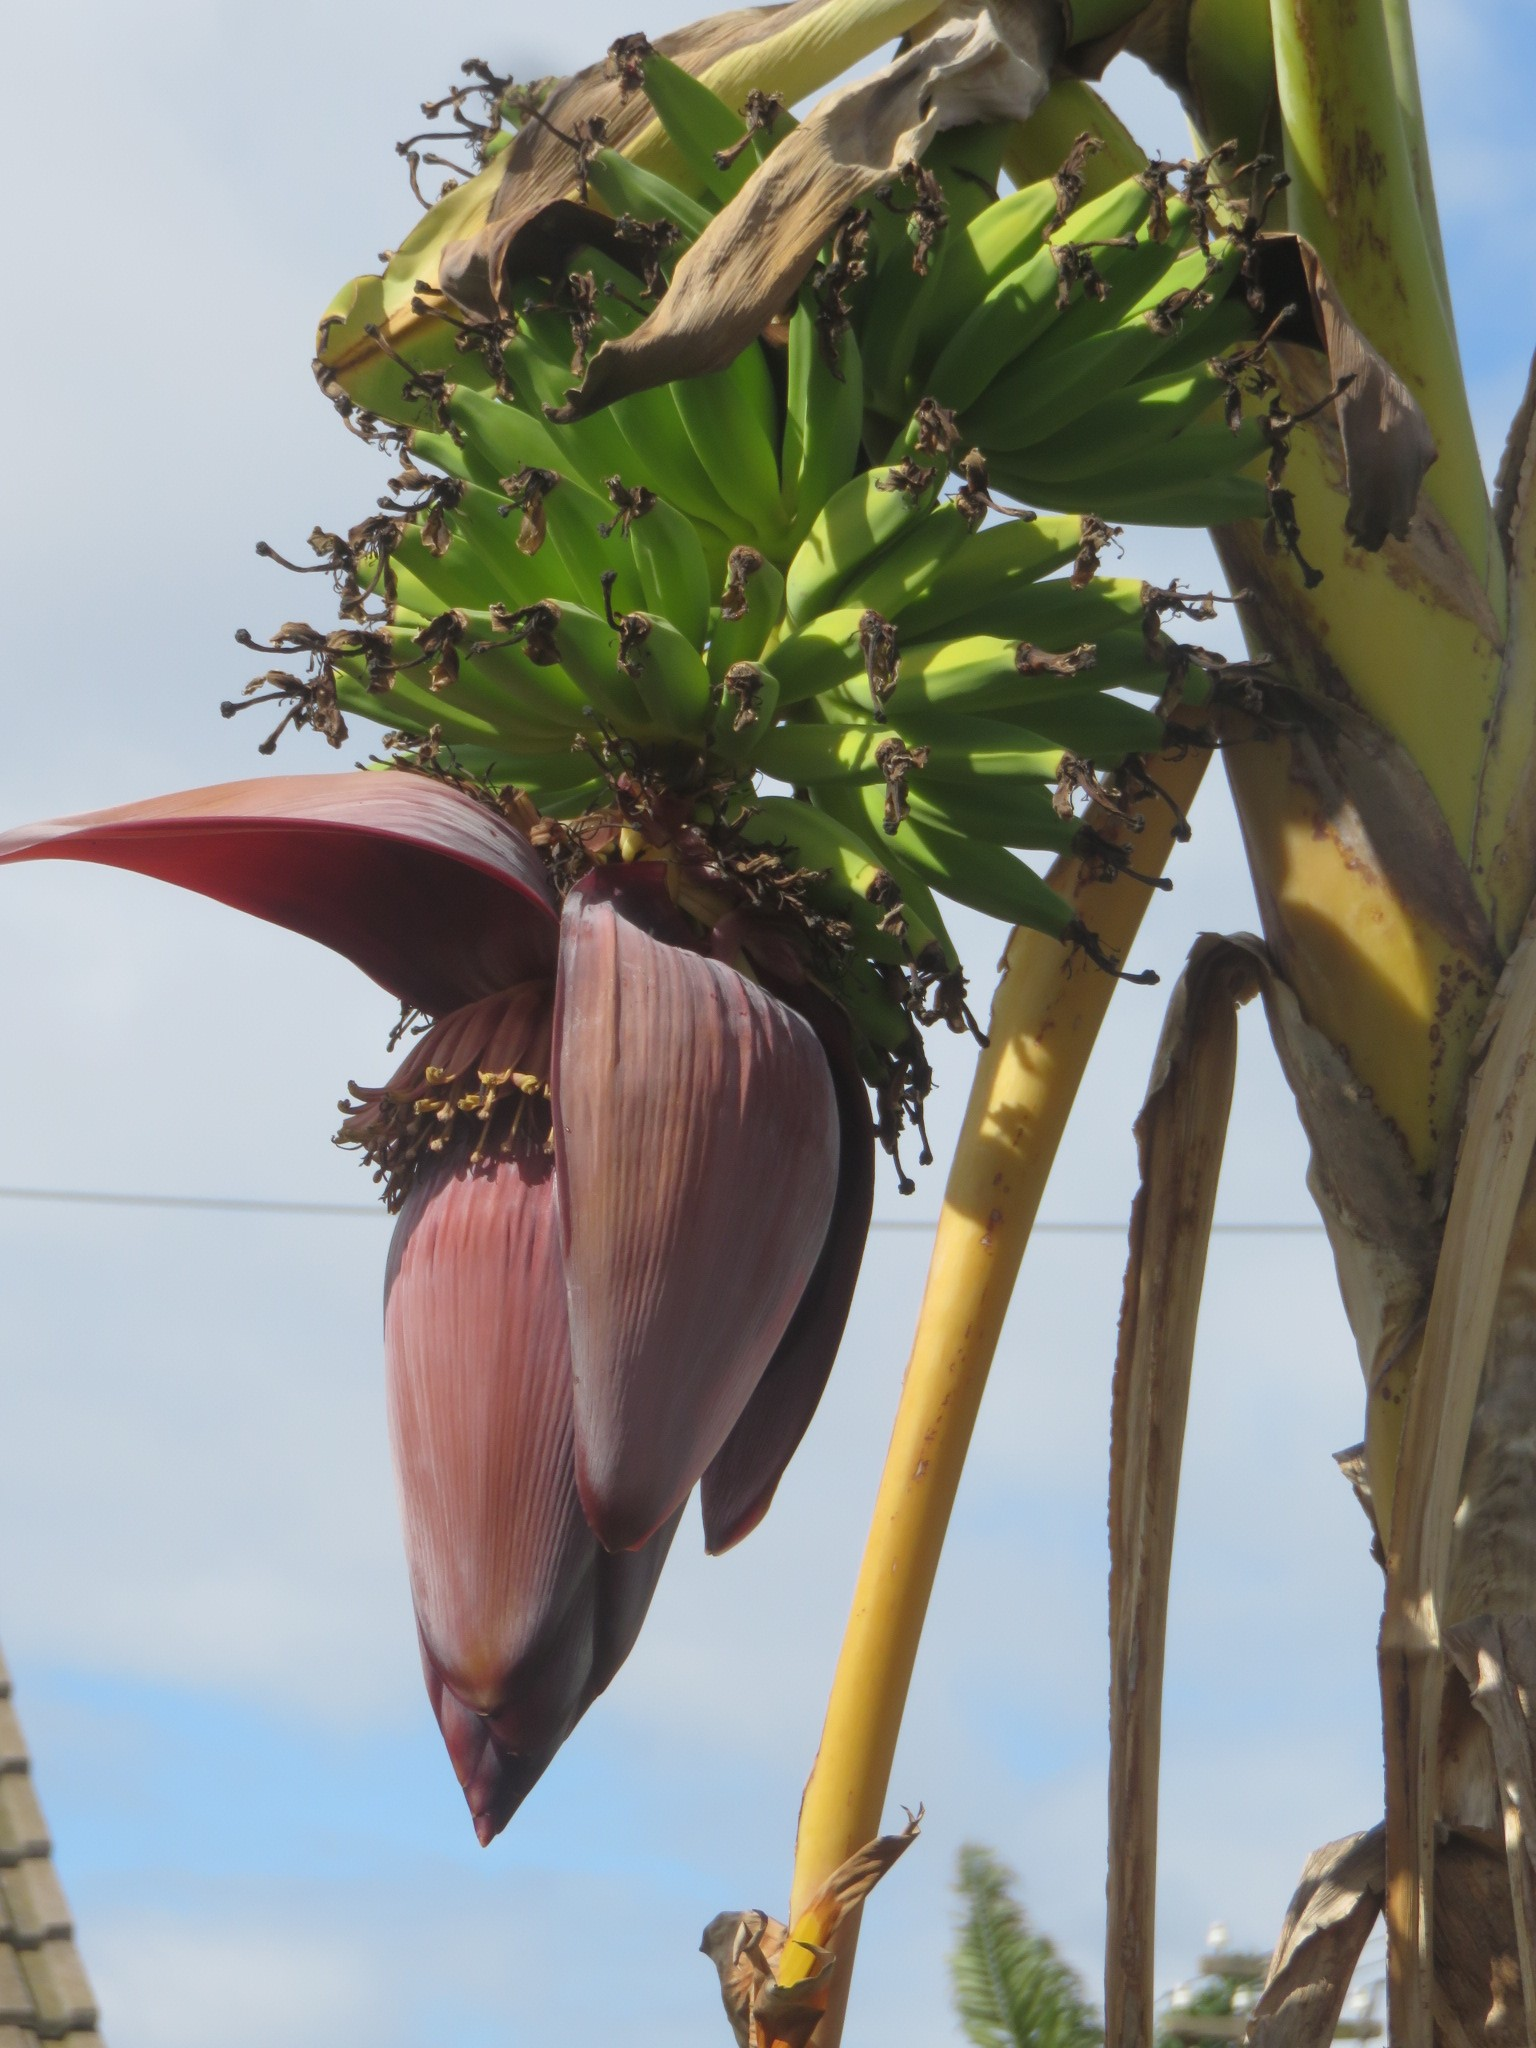 Trees such as bananas thrive on gray water